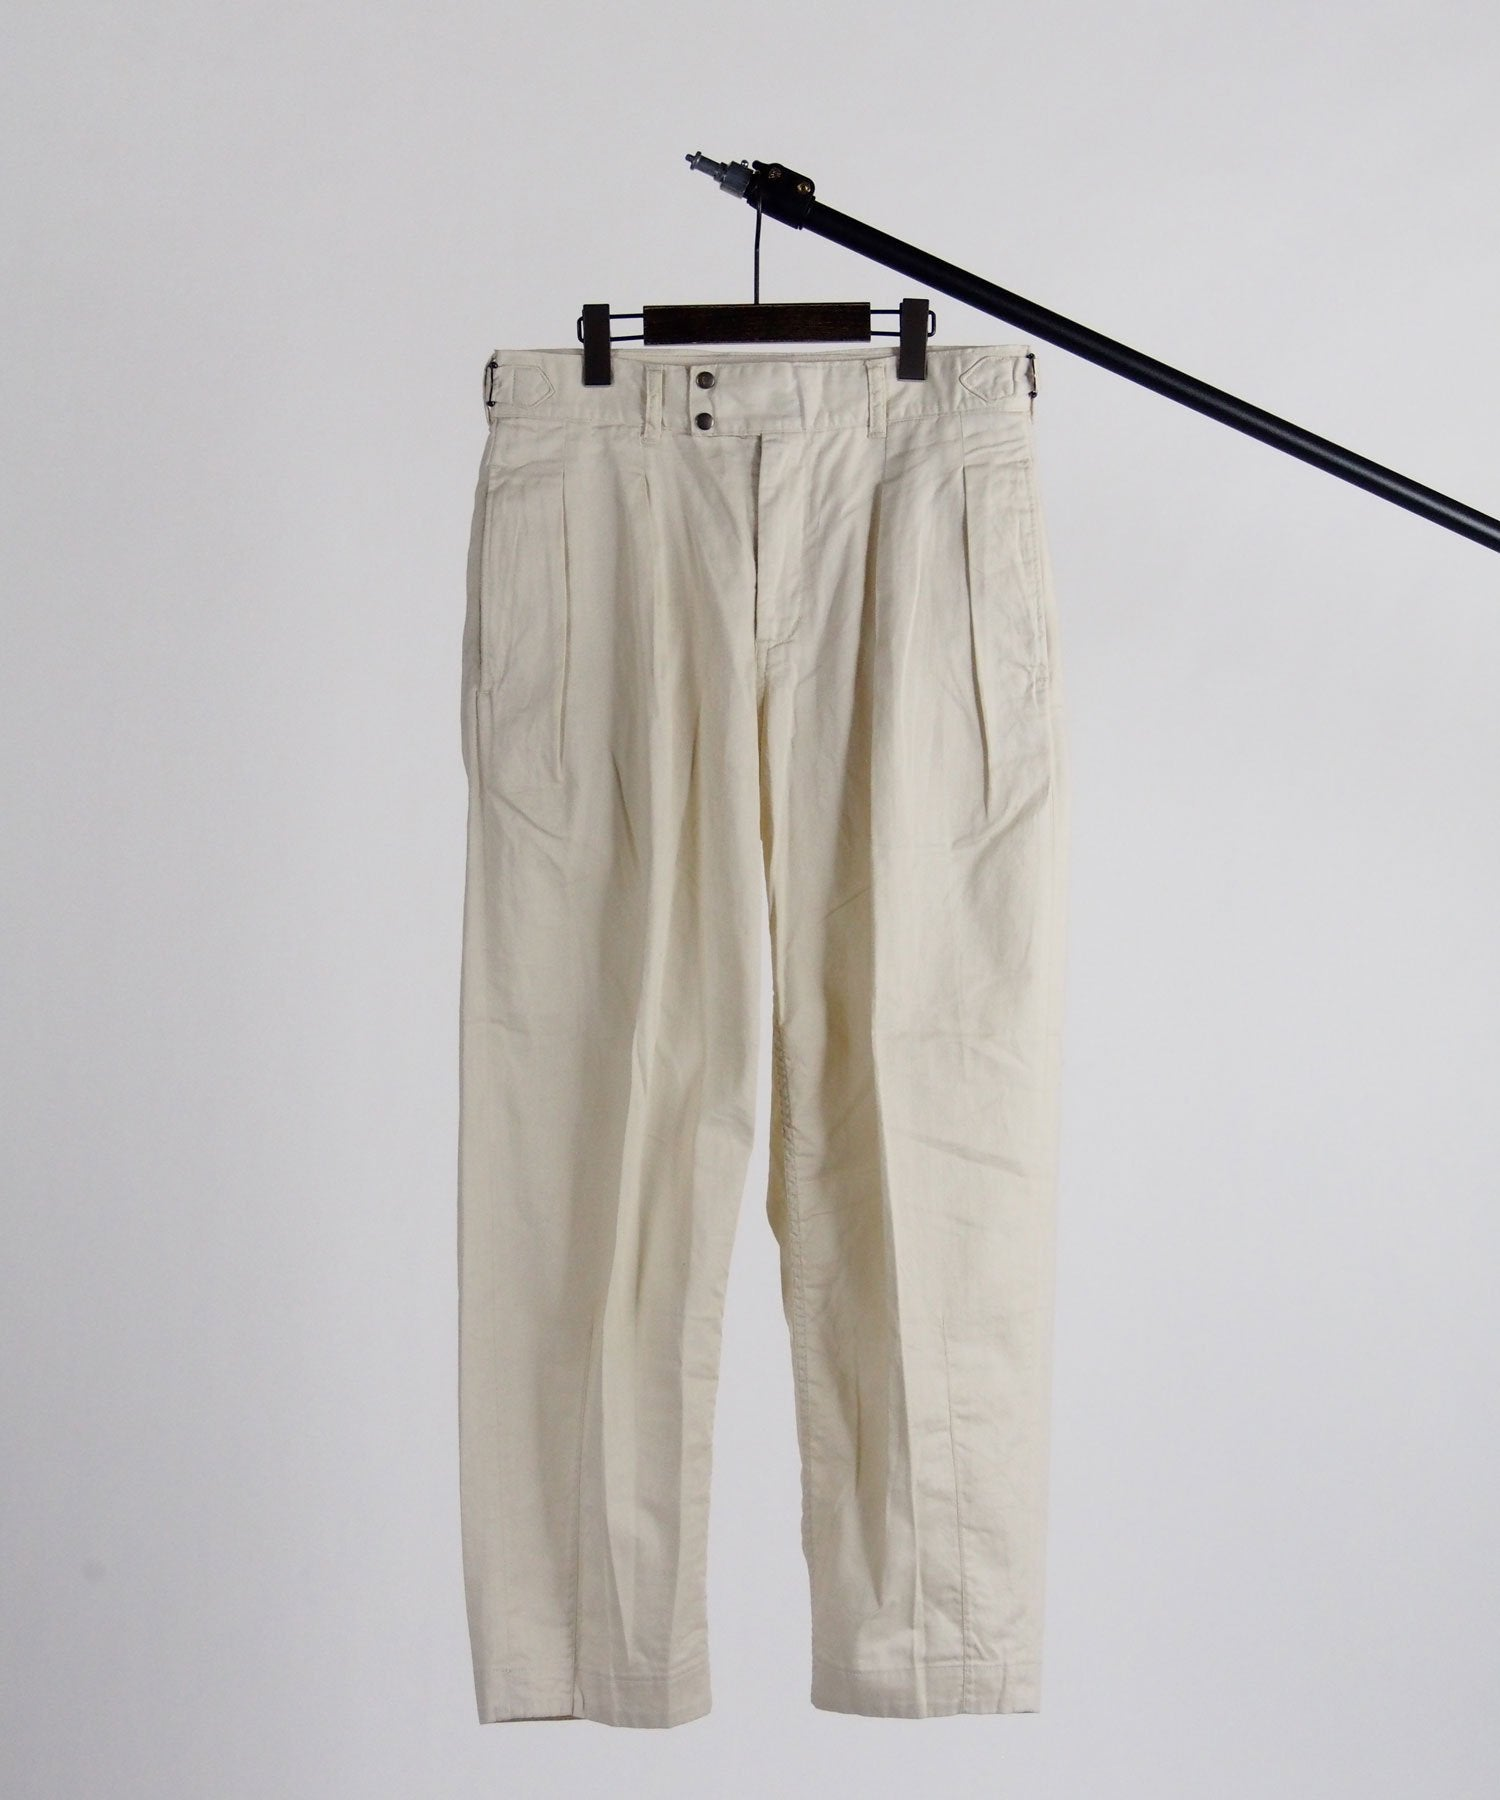 EGO TRIPPING 50's AUSTRALIA ARMY-TROUSERS